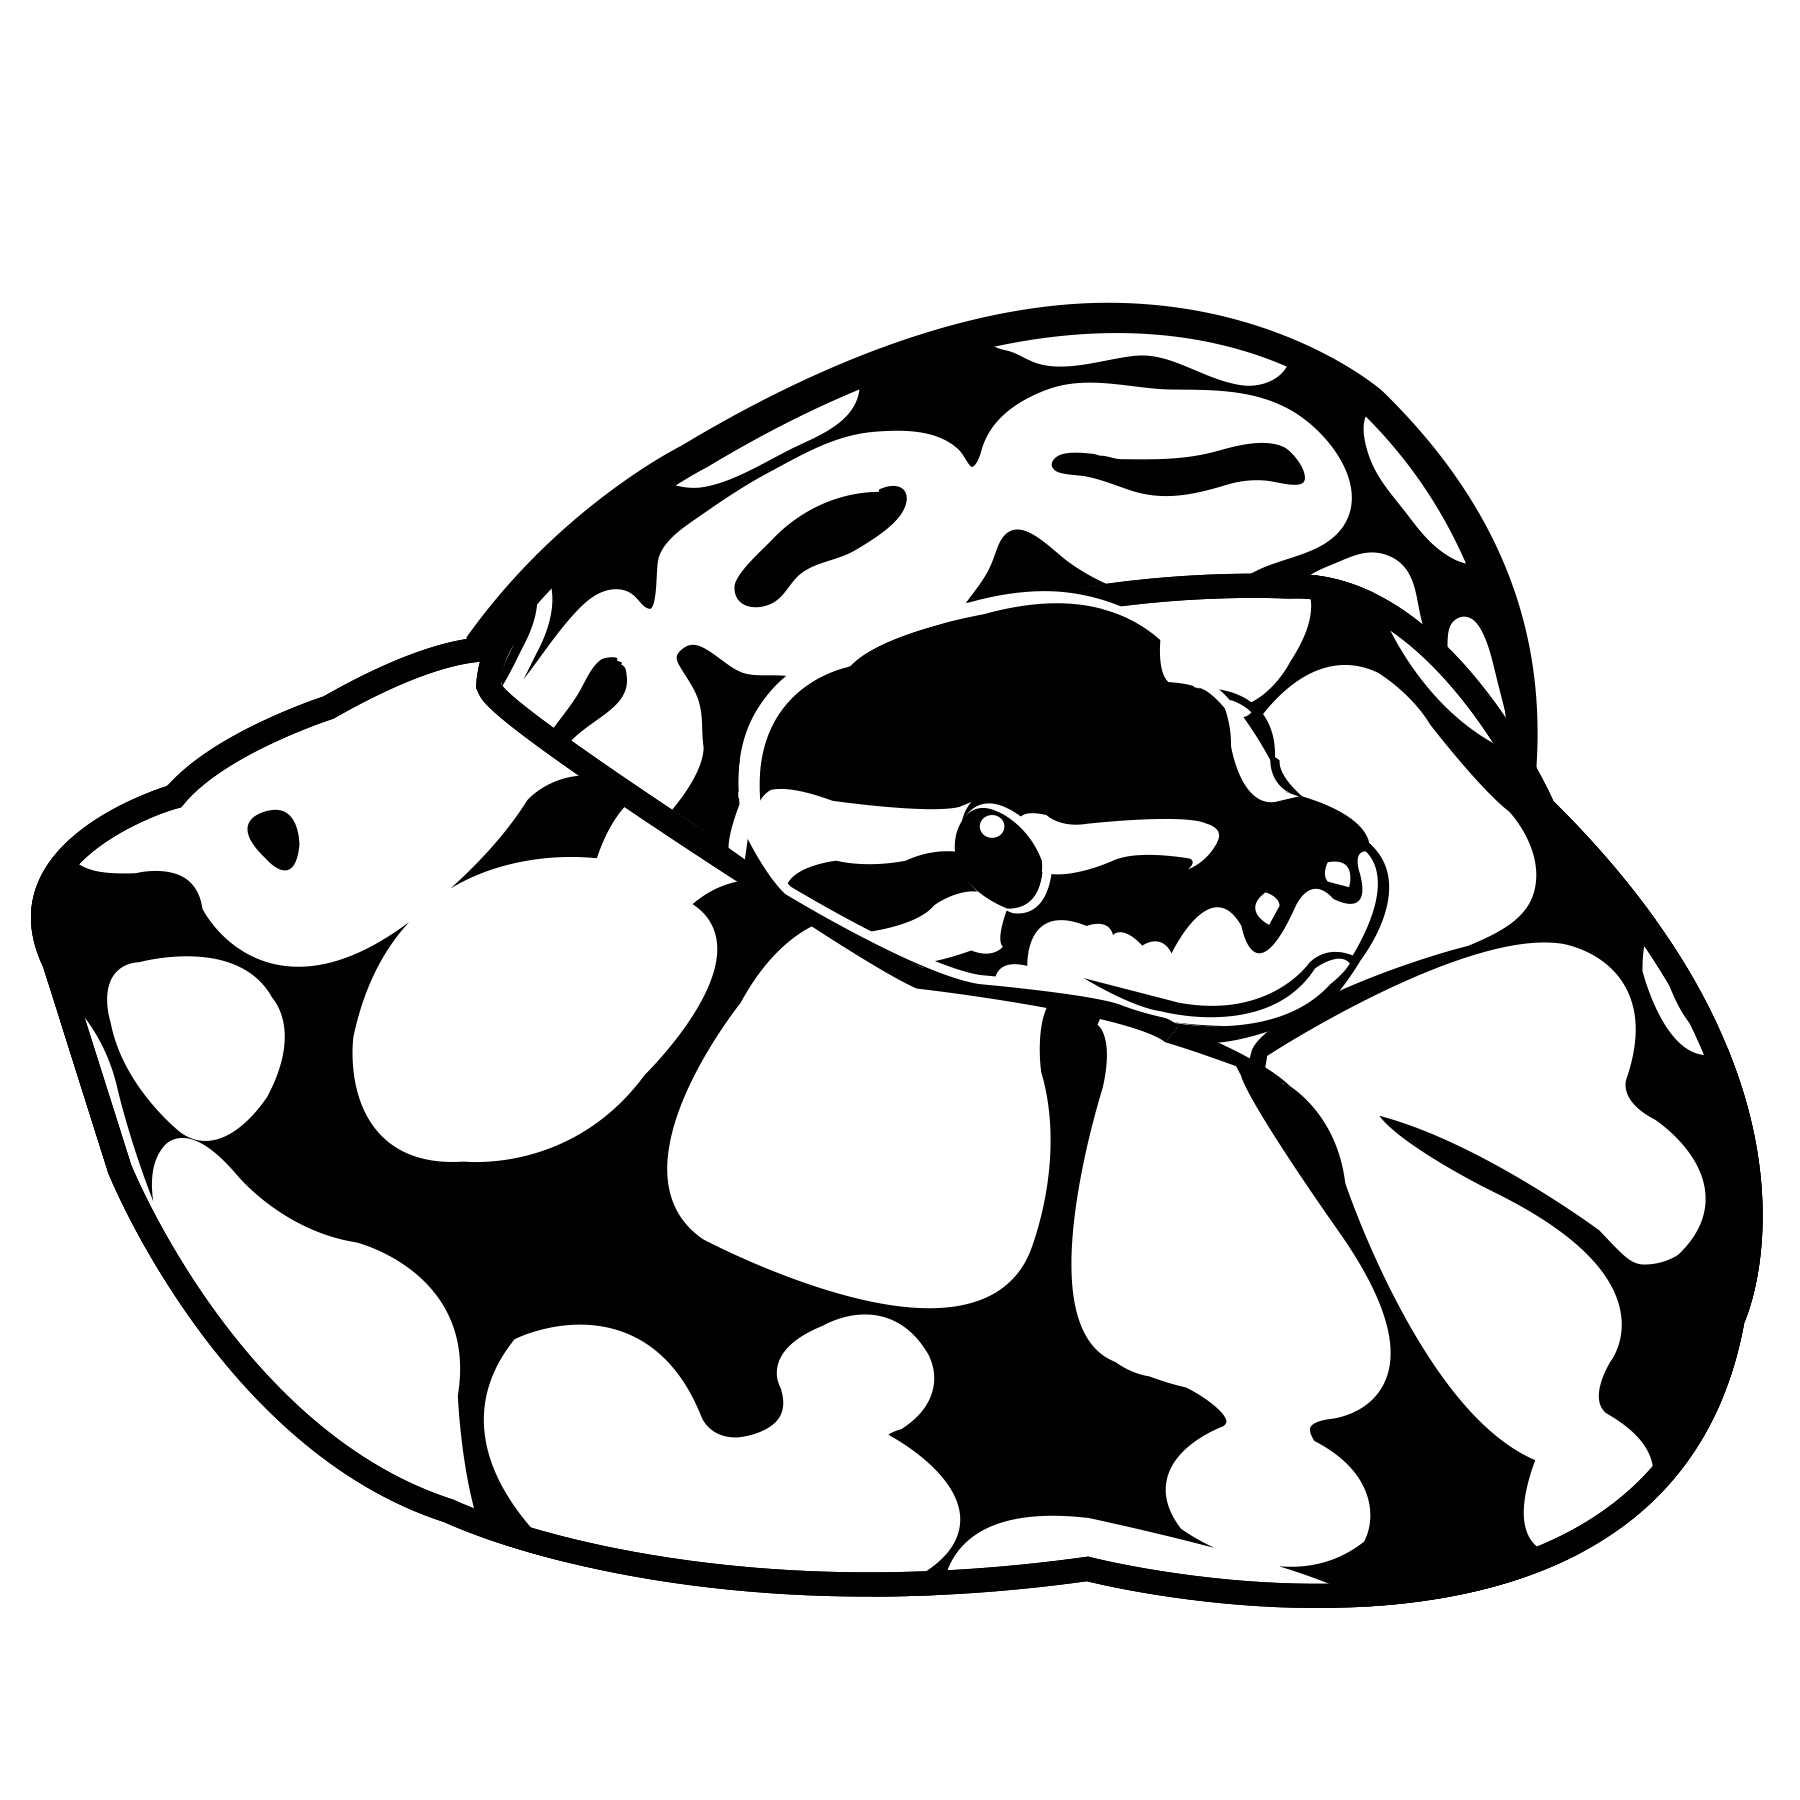 White Python clipart #1, Download drawings